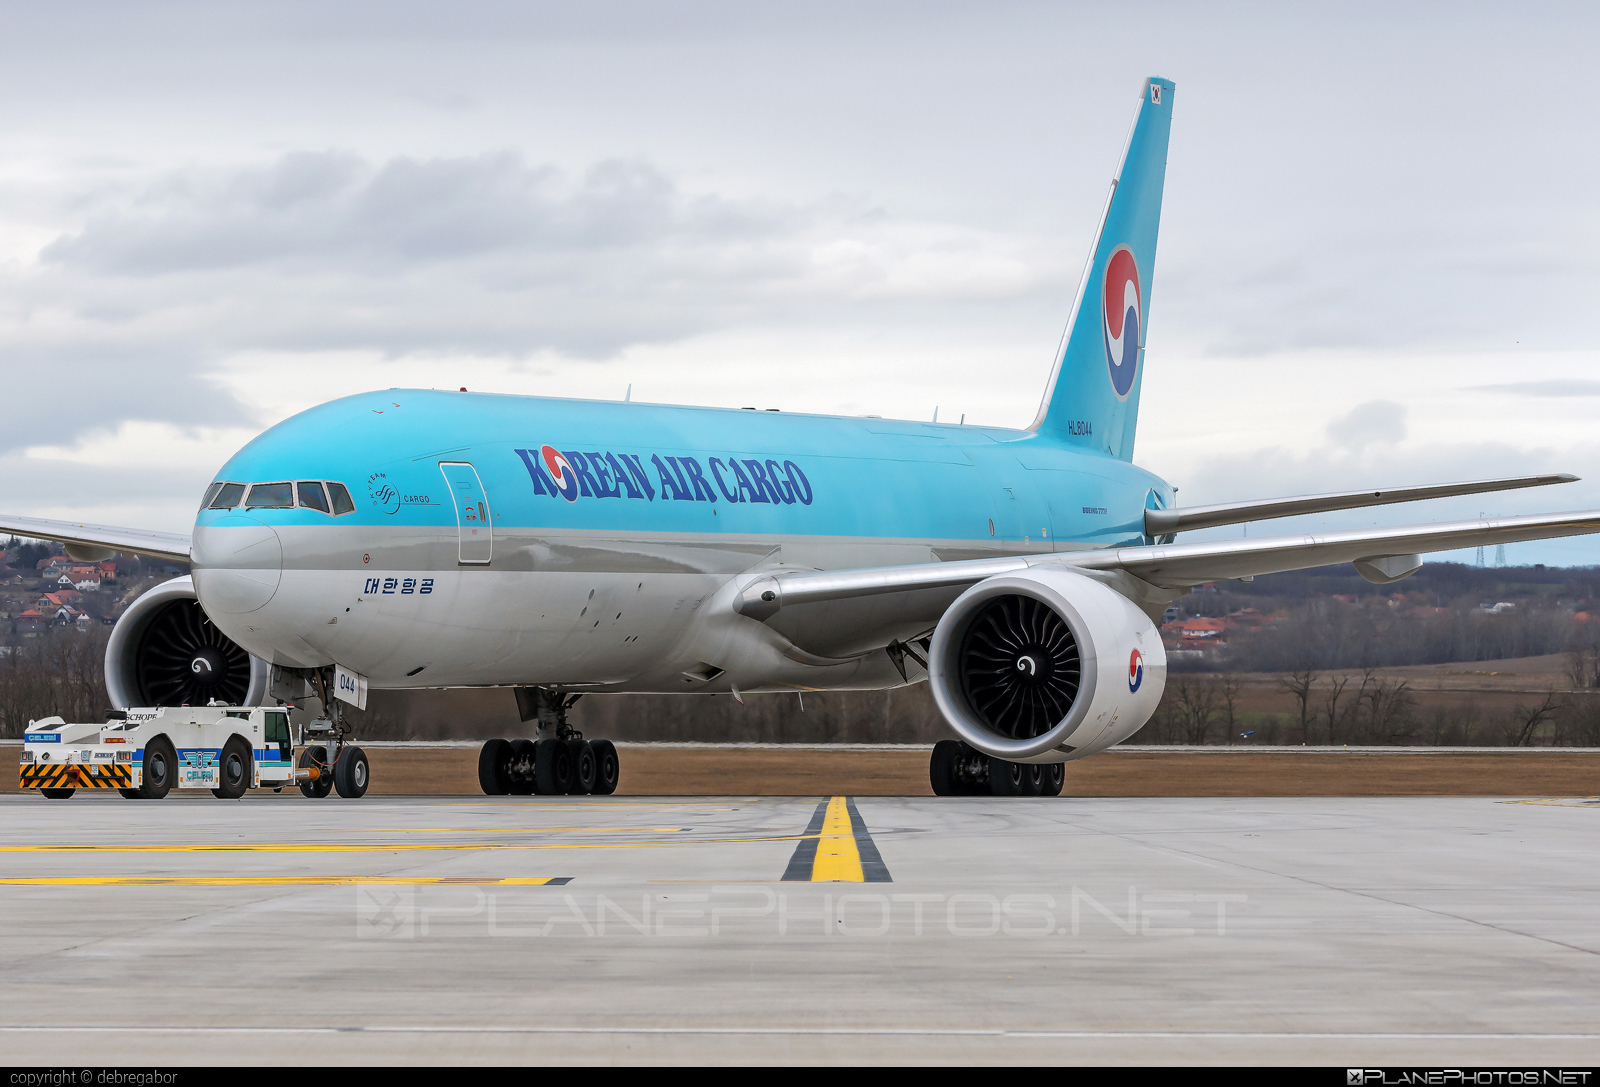 Boeing 777F - HL8044 operated by Korean Air Cargo #b777 #b777f #b777freighter #boeing #boeing777 #koreanair #koreanaircargo #tripleseven